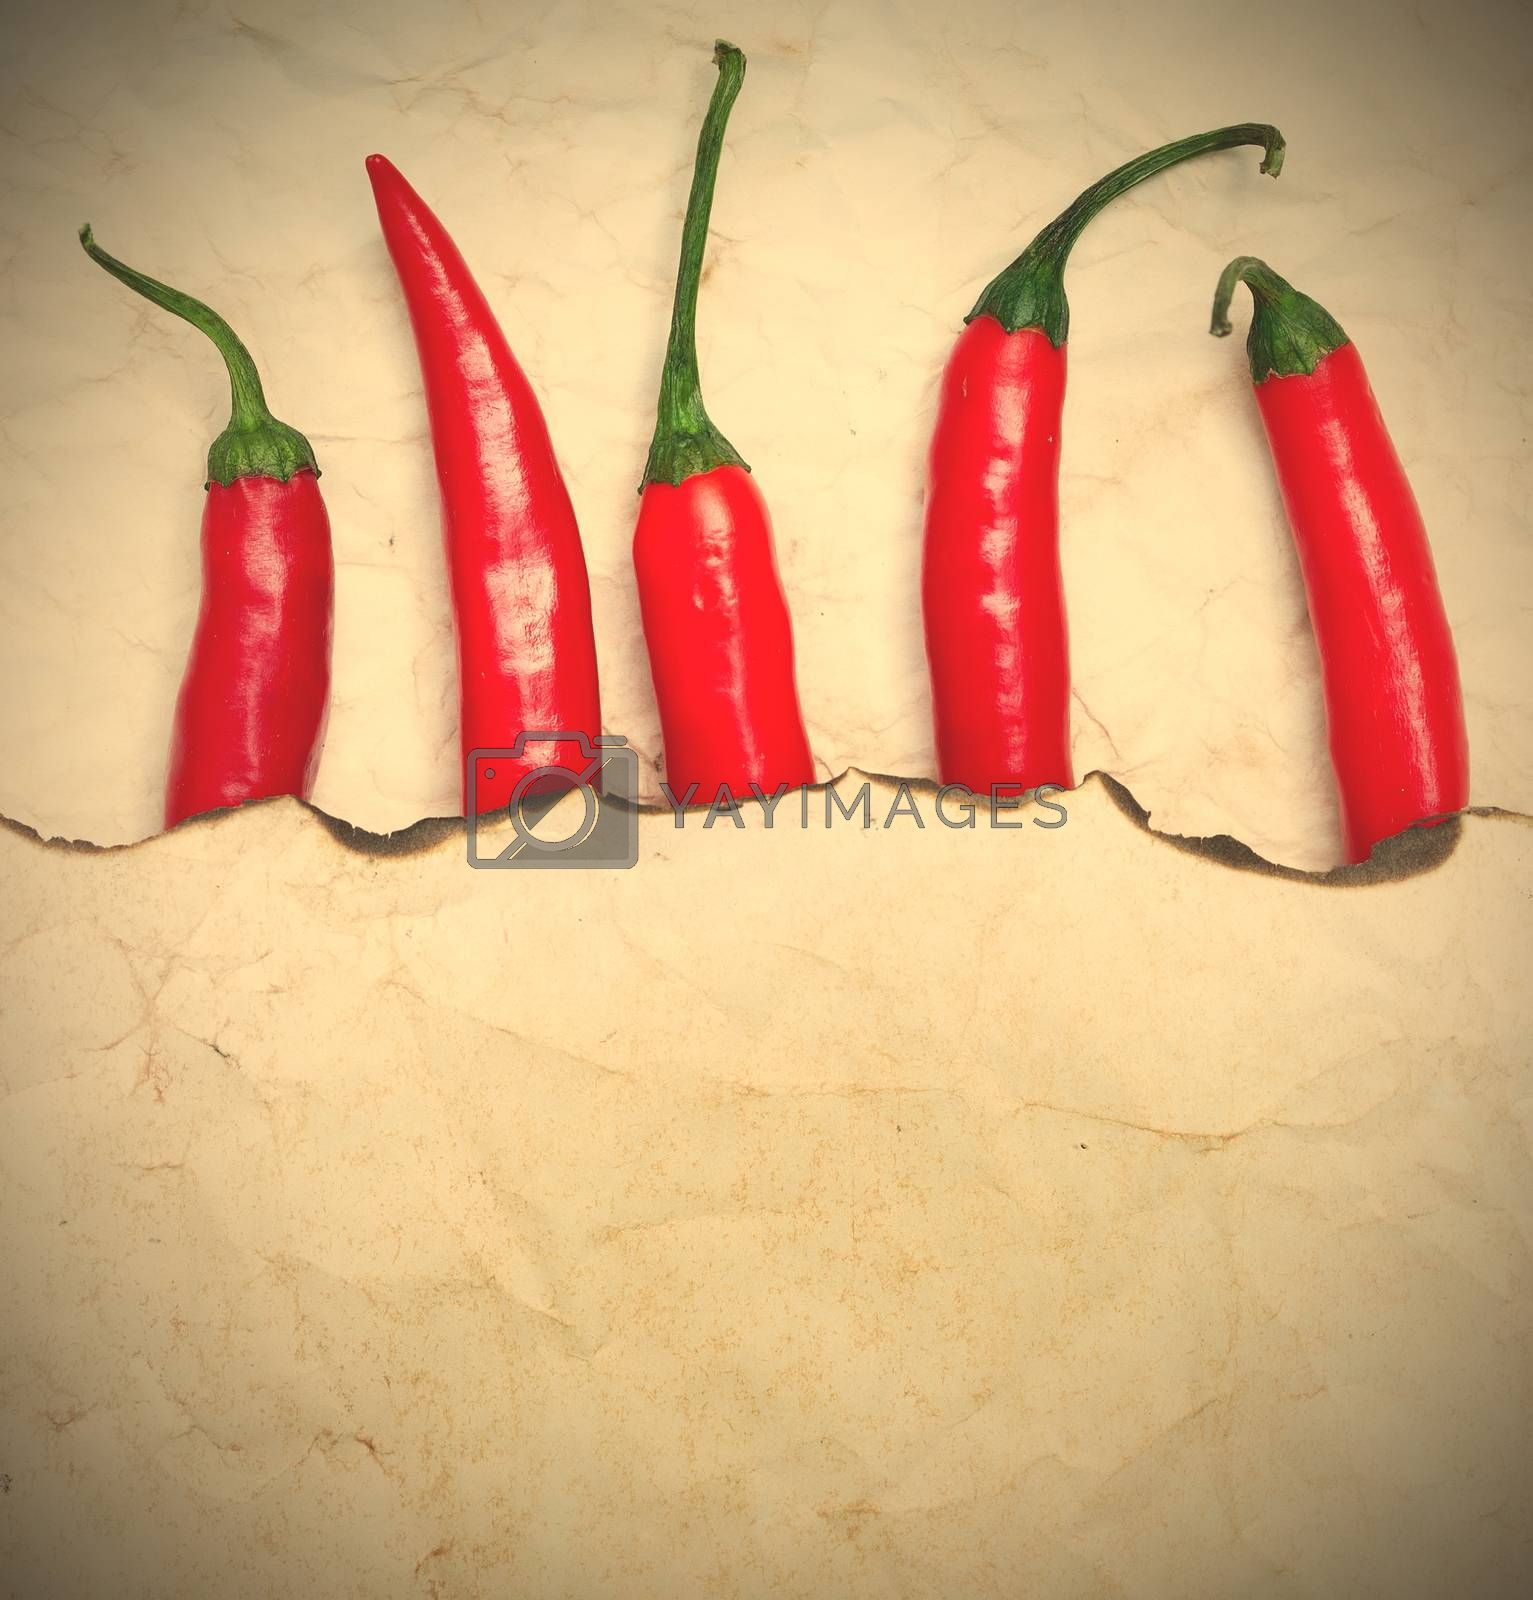 Royalty free image of fiery red chili peppers by Astroid